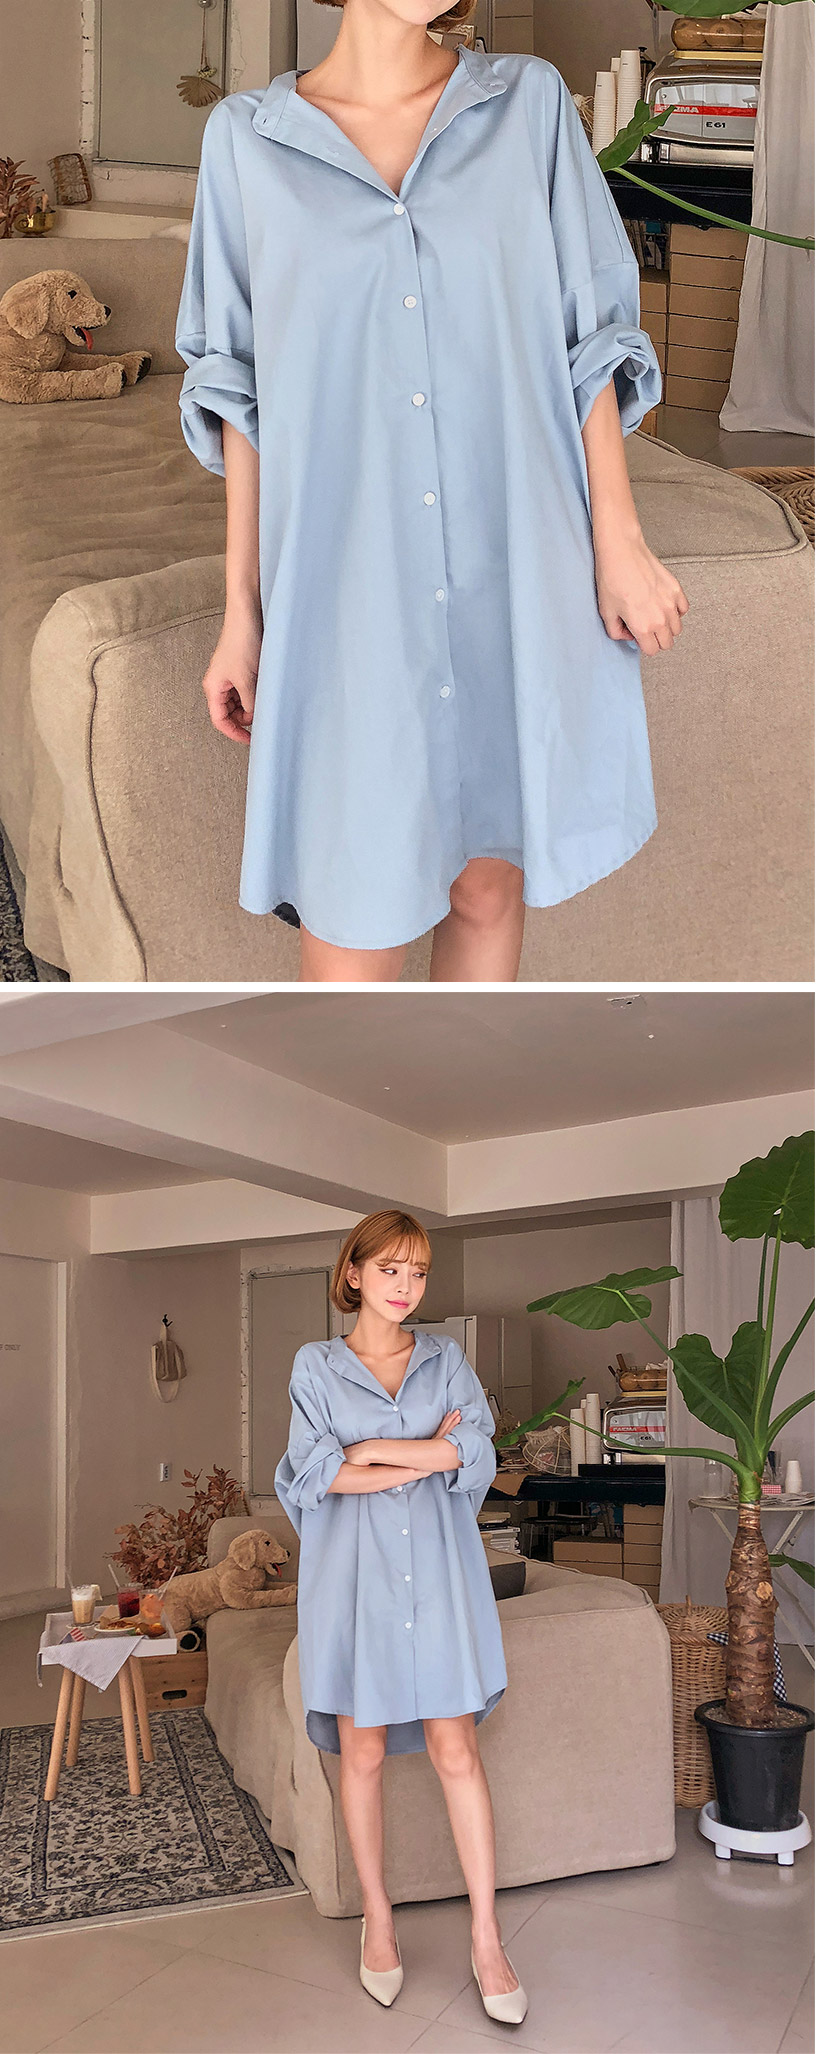 //cdn.nhanh.vn/cdn/store/29770/psCT/20181003/9325619/_CHUU_MADE__Cotton_Long_Shirt_(30).jpg